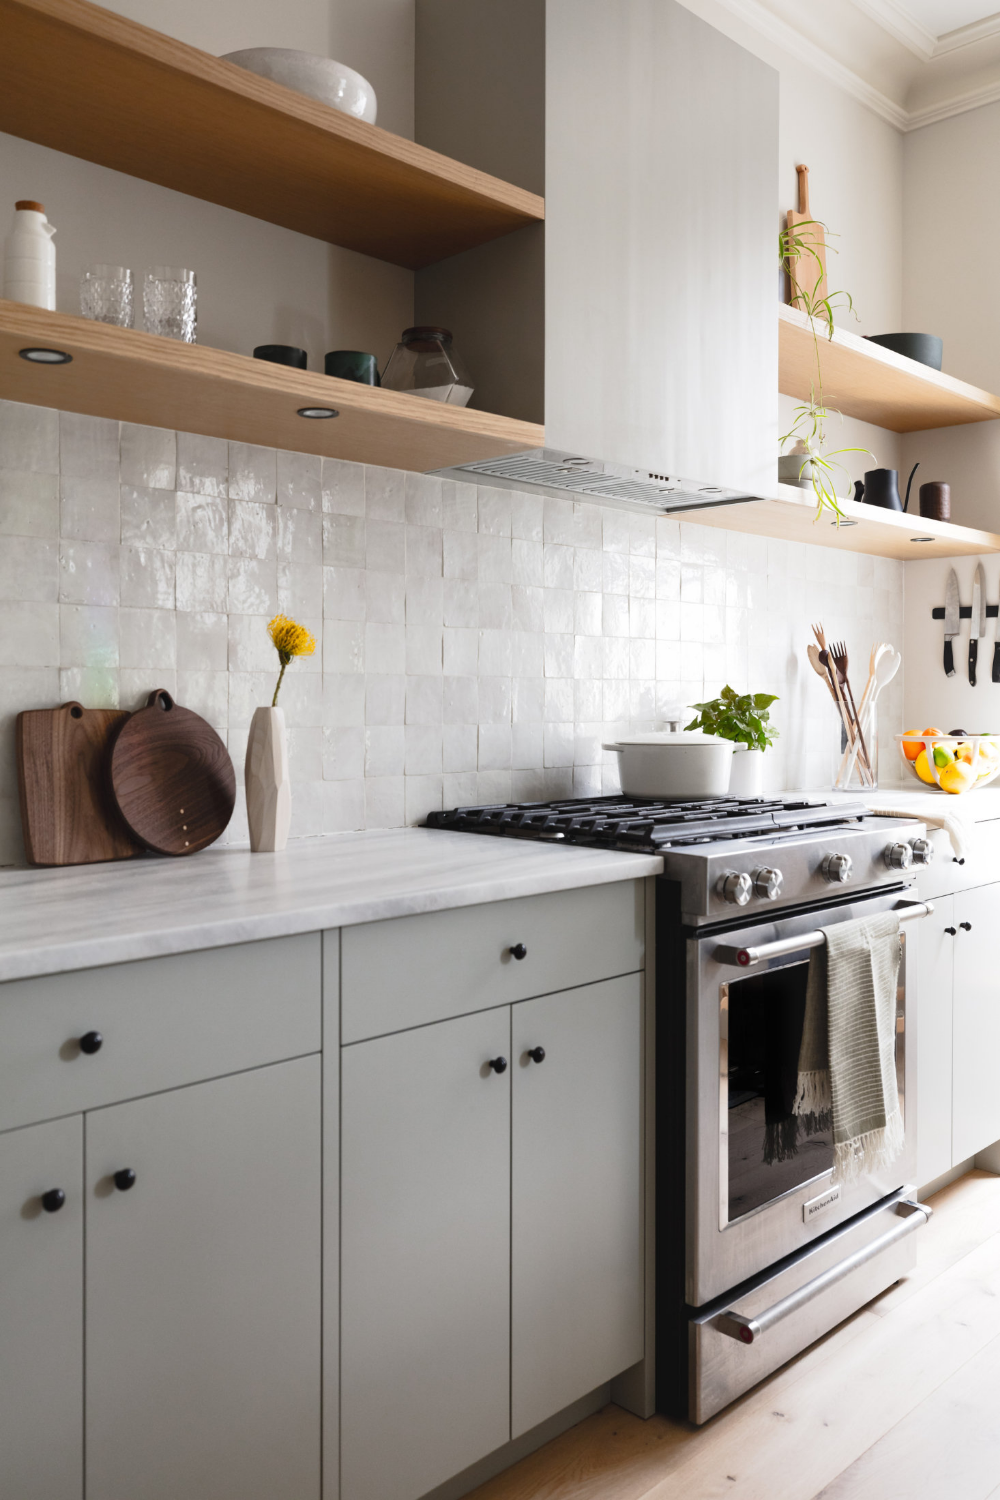 """Kitchen of the Week: A Brooklyn Kitchen Designed Around the Keywords """"Social"""" and """"Minimal but Warm"""" – Remodelista"""